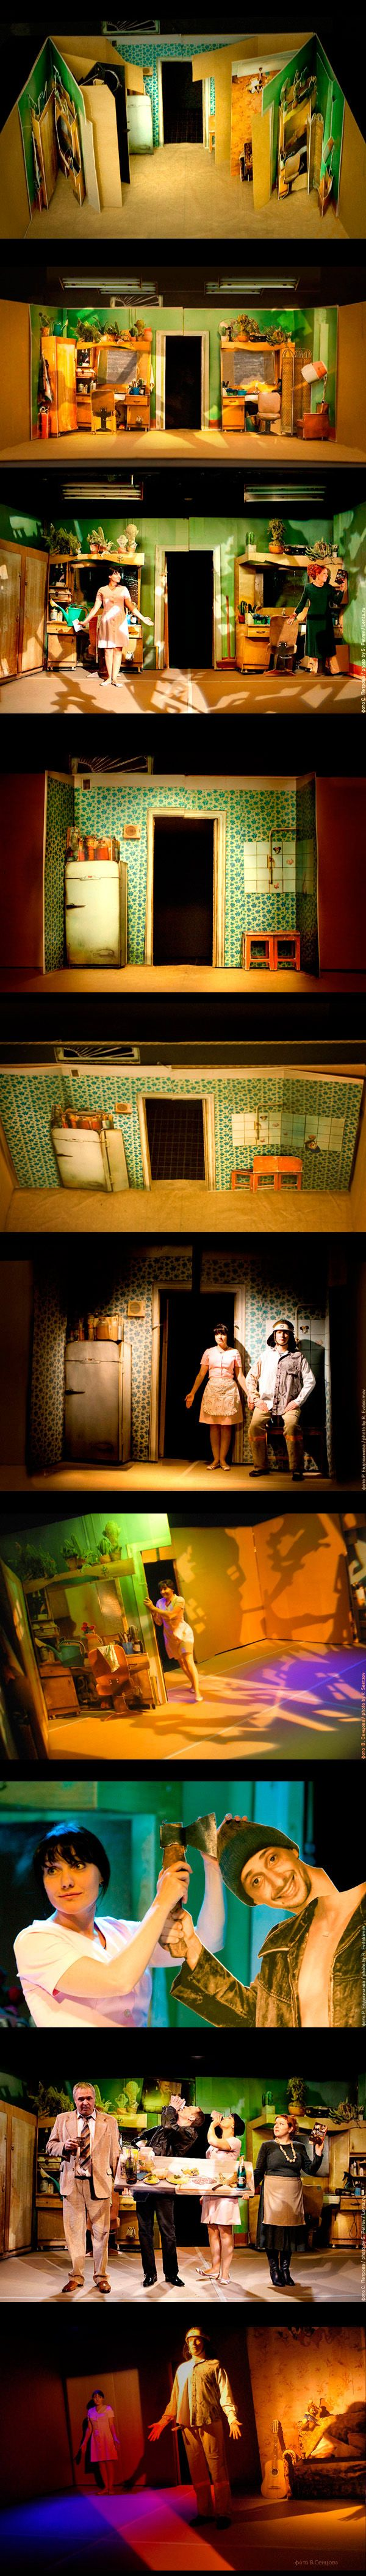 "Pop-up set design on Behance Set design for performance ""Hairdresser"" (Parikmakhersha), Practice theatre, Moscow Photo by/ Polina Bakhtina"